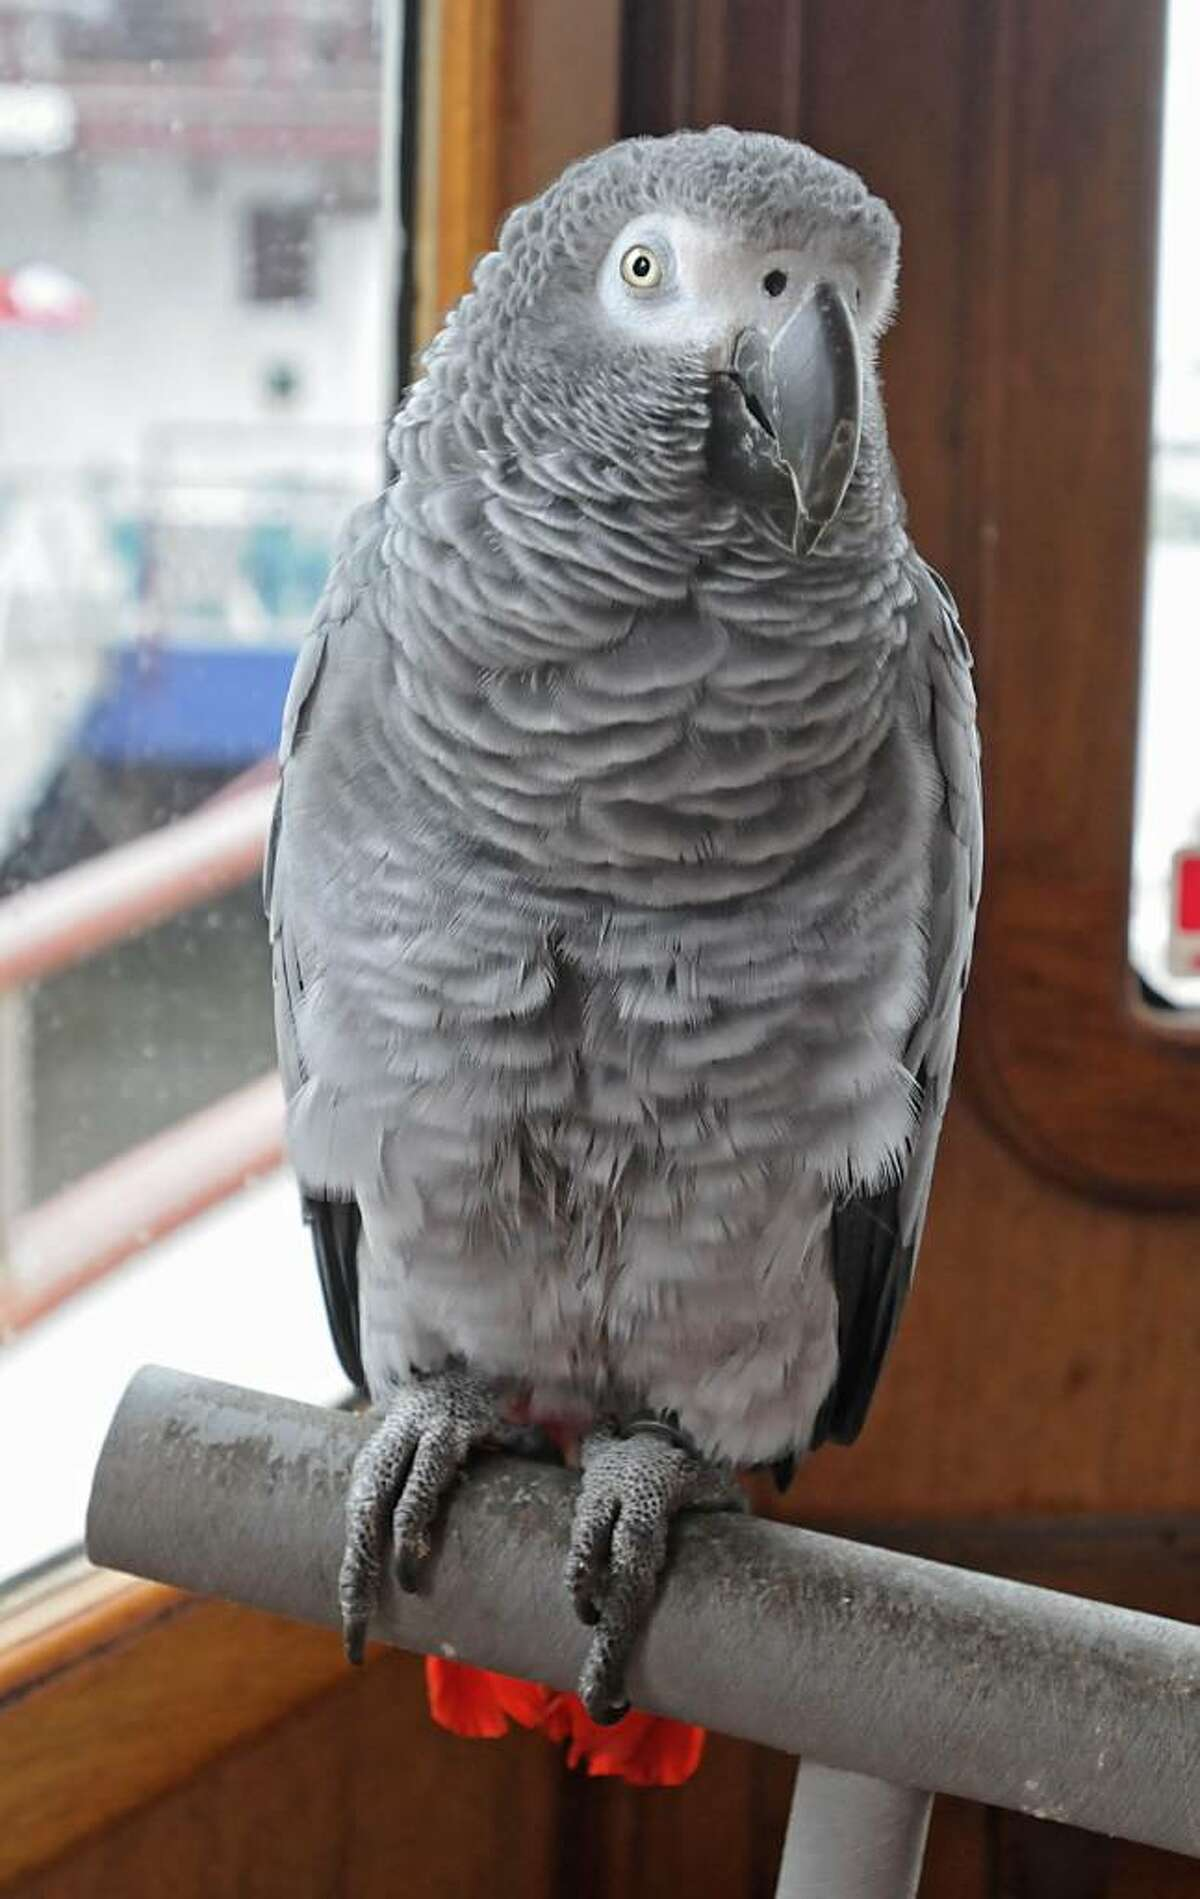 Augie the parrot will be aboard the Paladino tour boat, moored Wednesday at the Corning Preserve. (Lori Van Buren / Times Union)